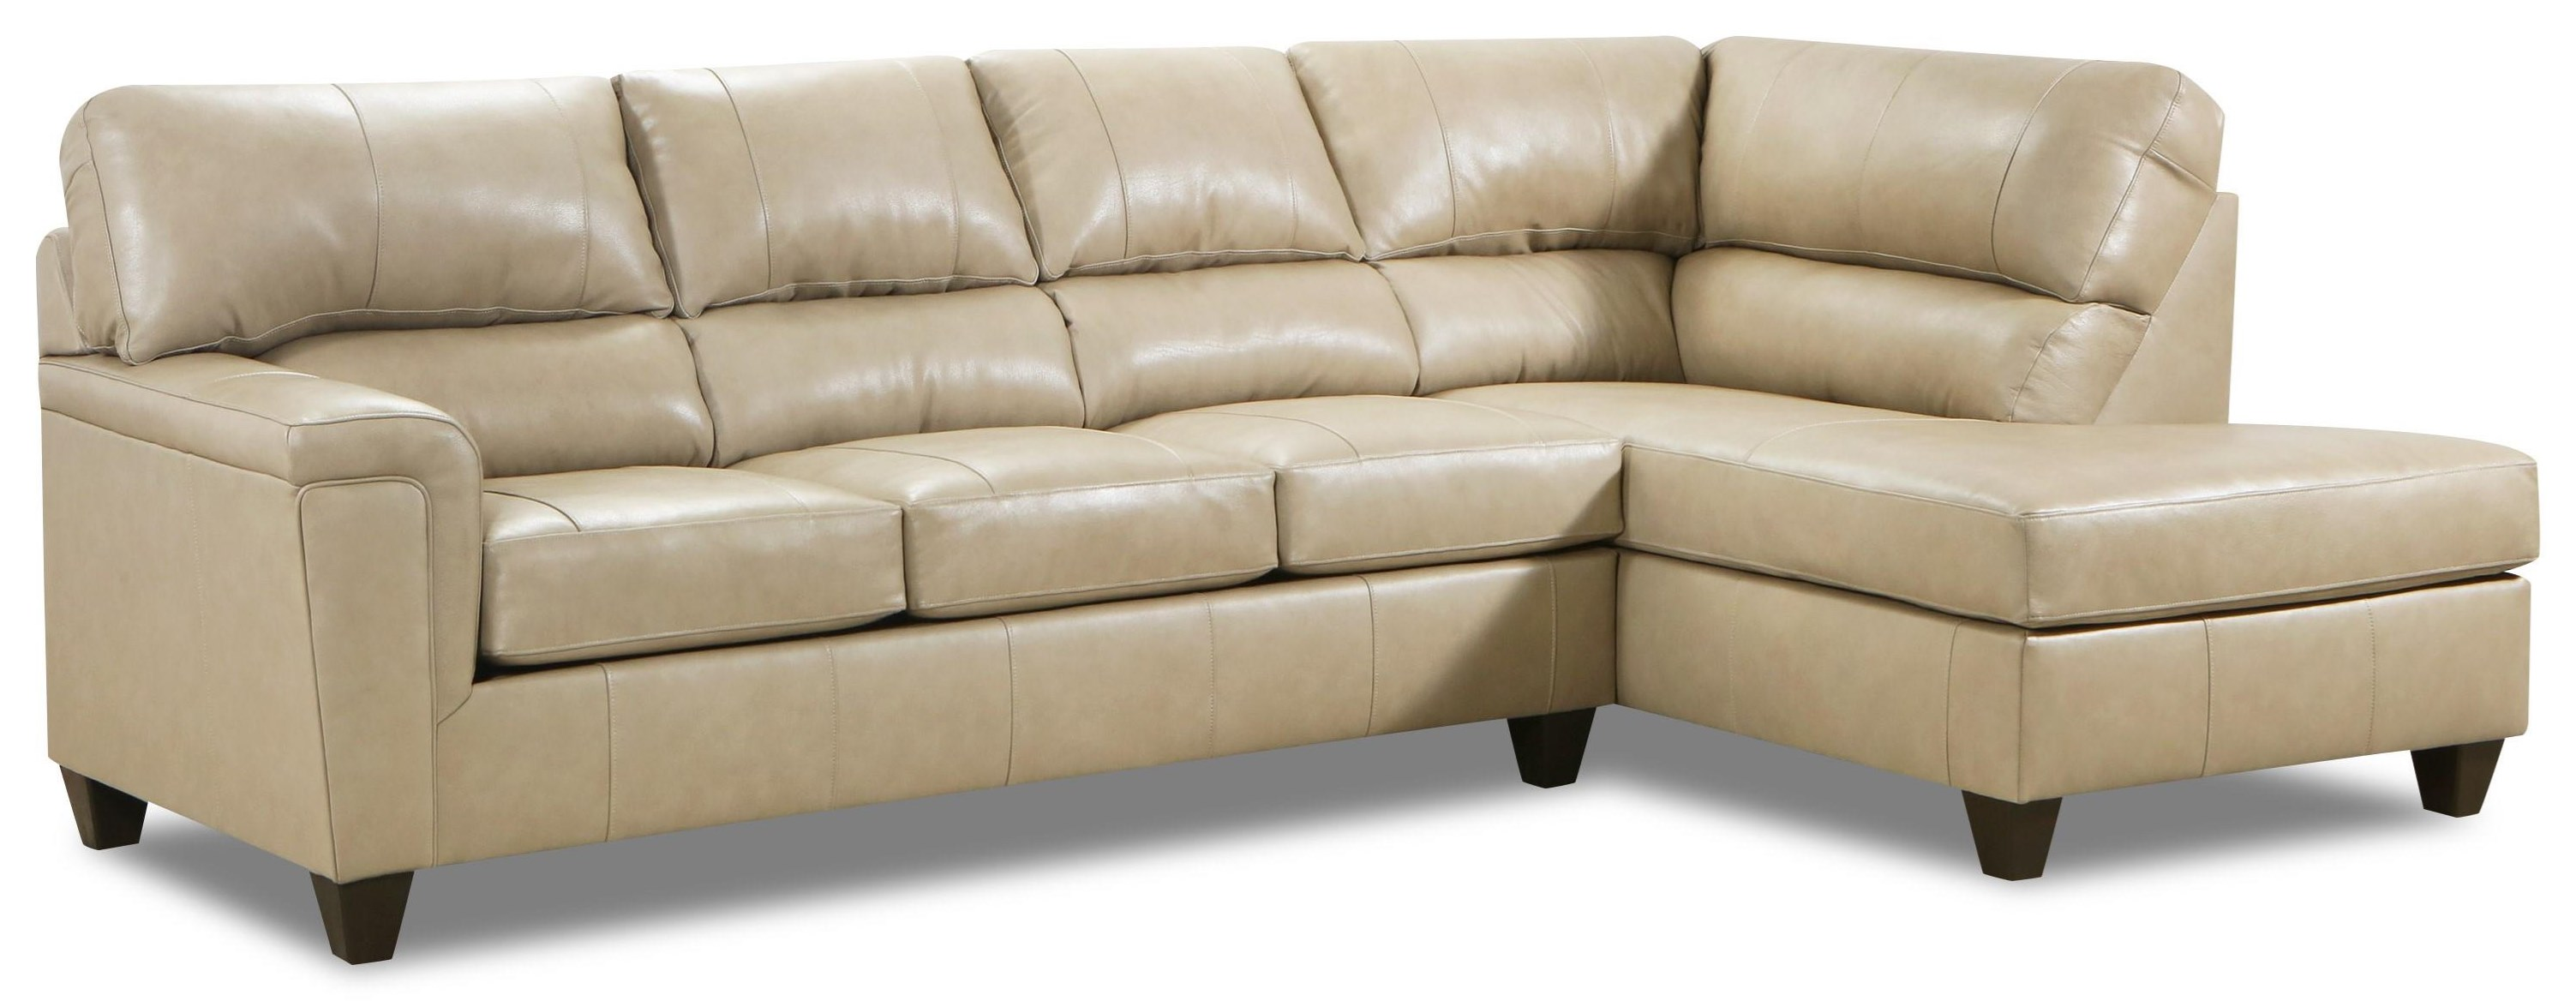 2038 2 Pc Leather Sectional by Lane at Furniture Fair - North Carolina